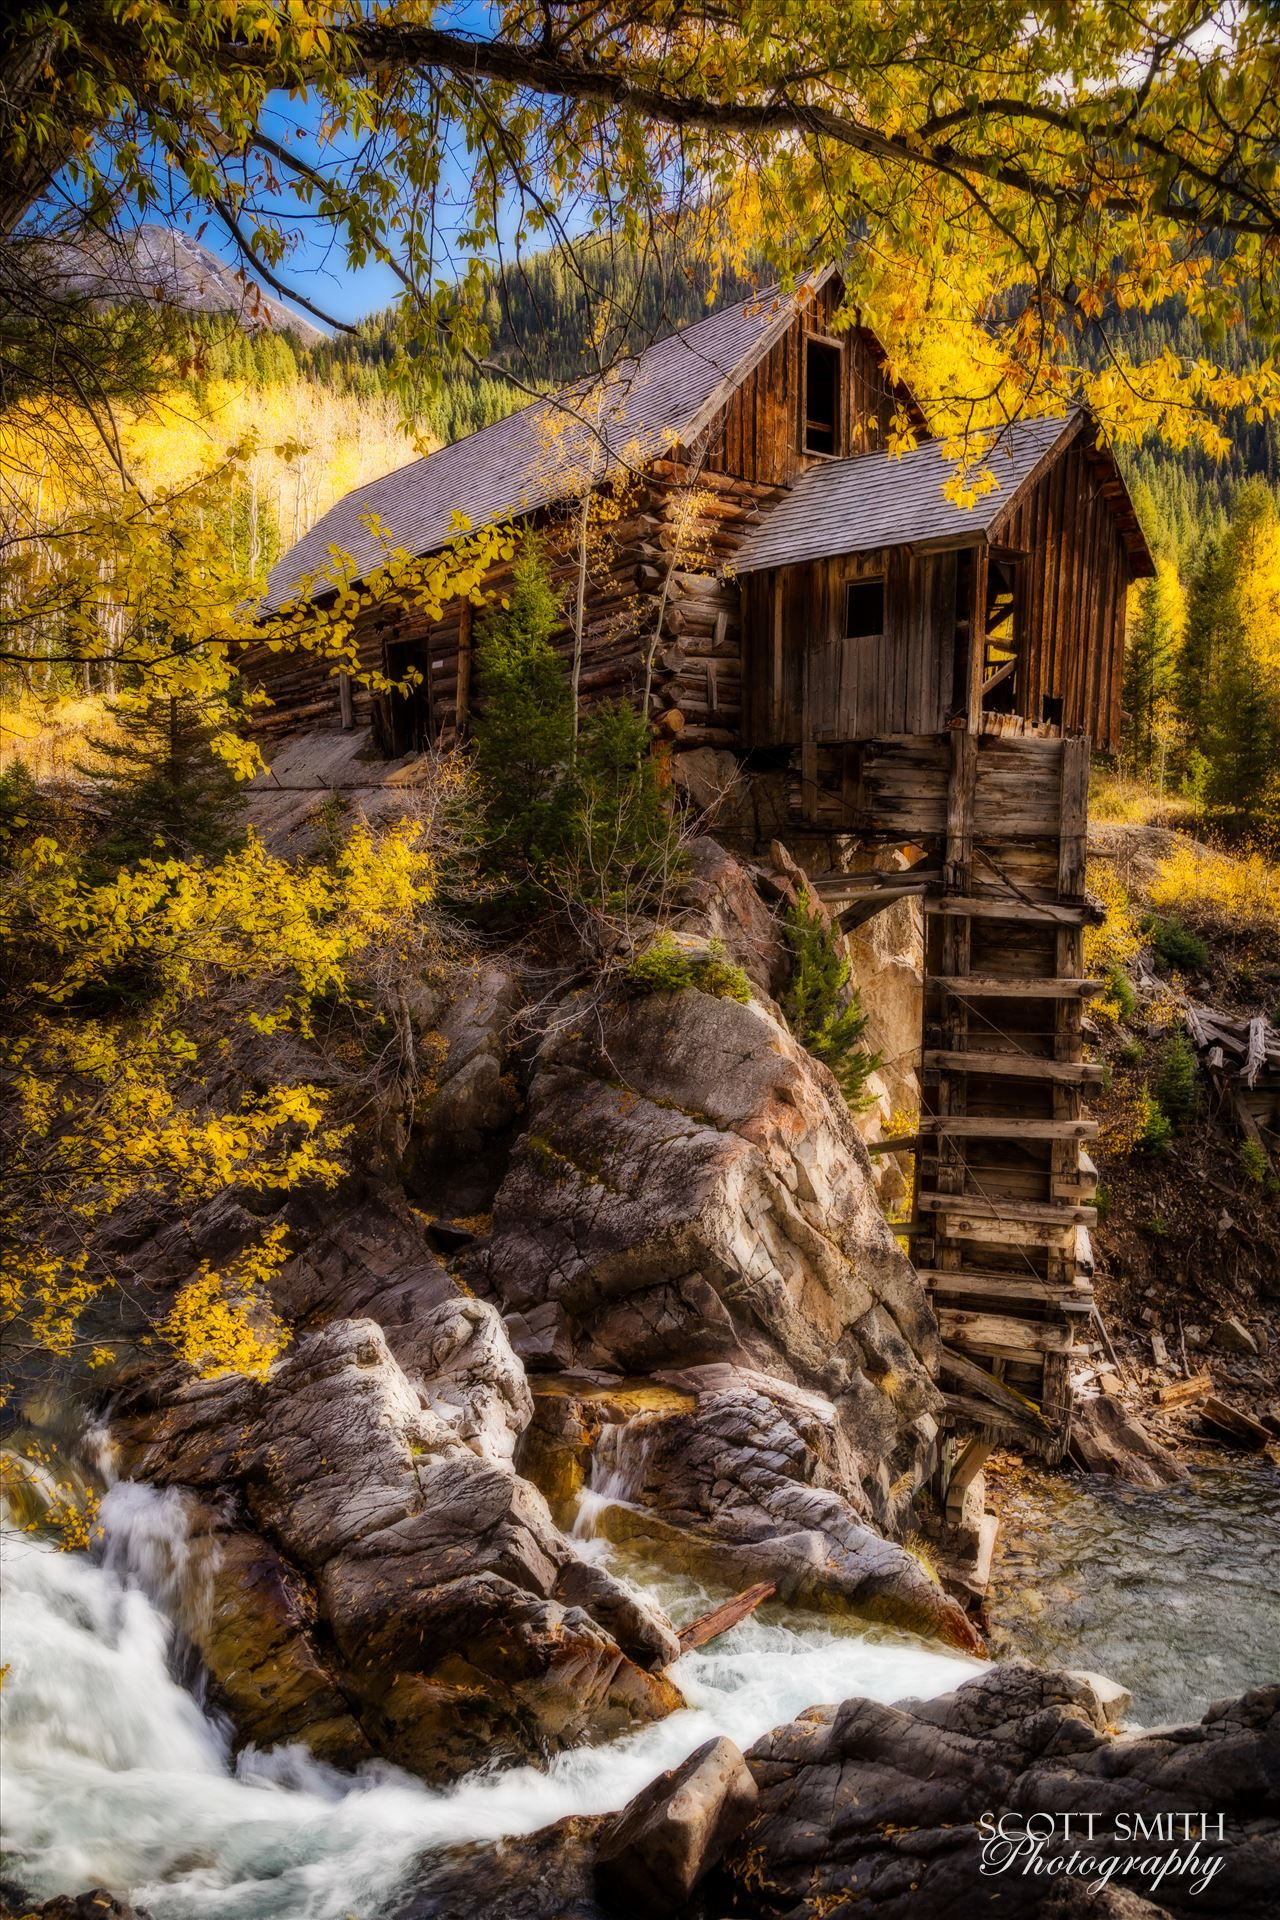 Crystal Mill, Colorado 12 - The Crystal Mill, or the Old Mill is an 1892 wooden powerhouse located on an outcrop above the Crystal River in Crystal, Colorado by D Scott Smith